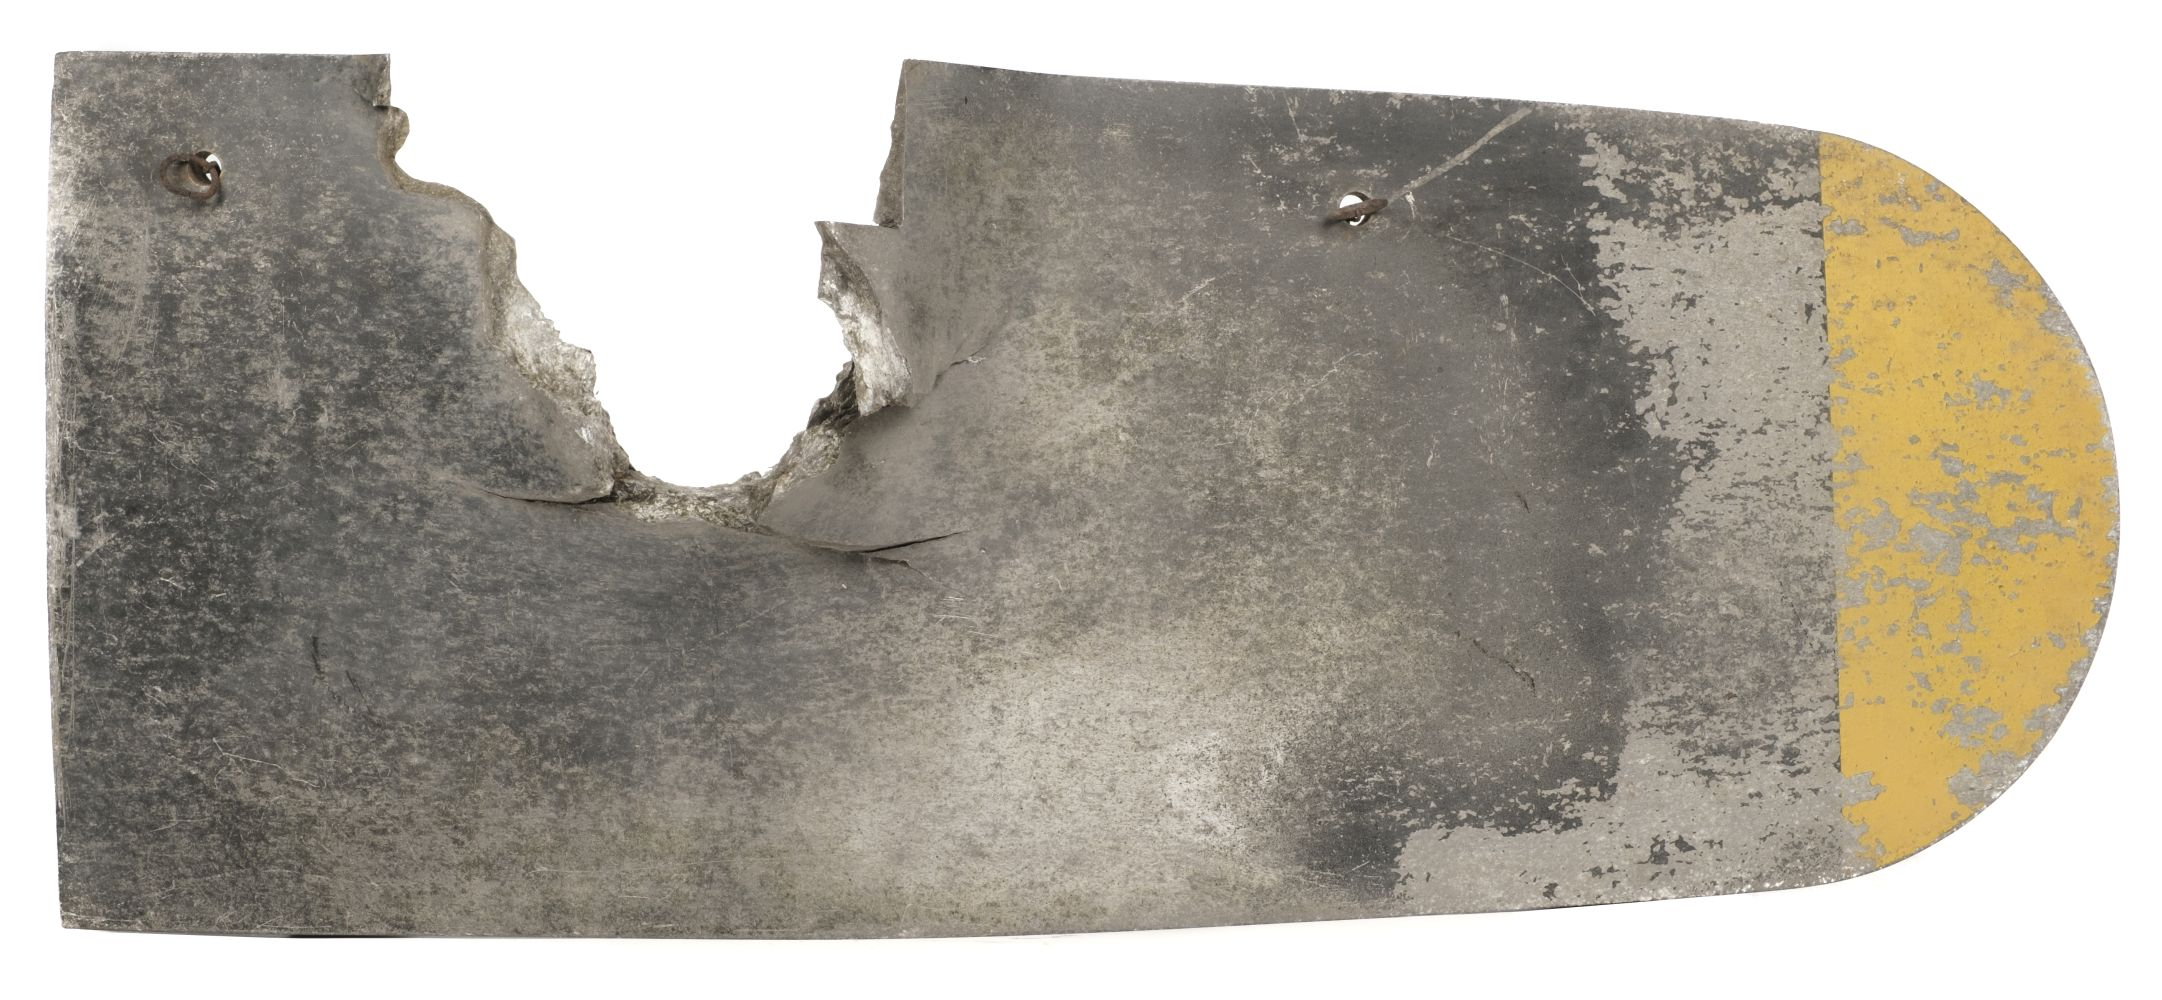 * Mosquito Propeller Tip and Navigator's Board